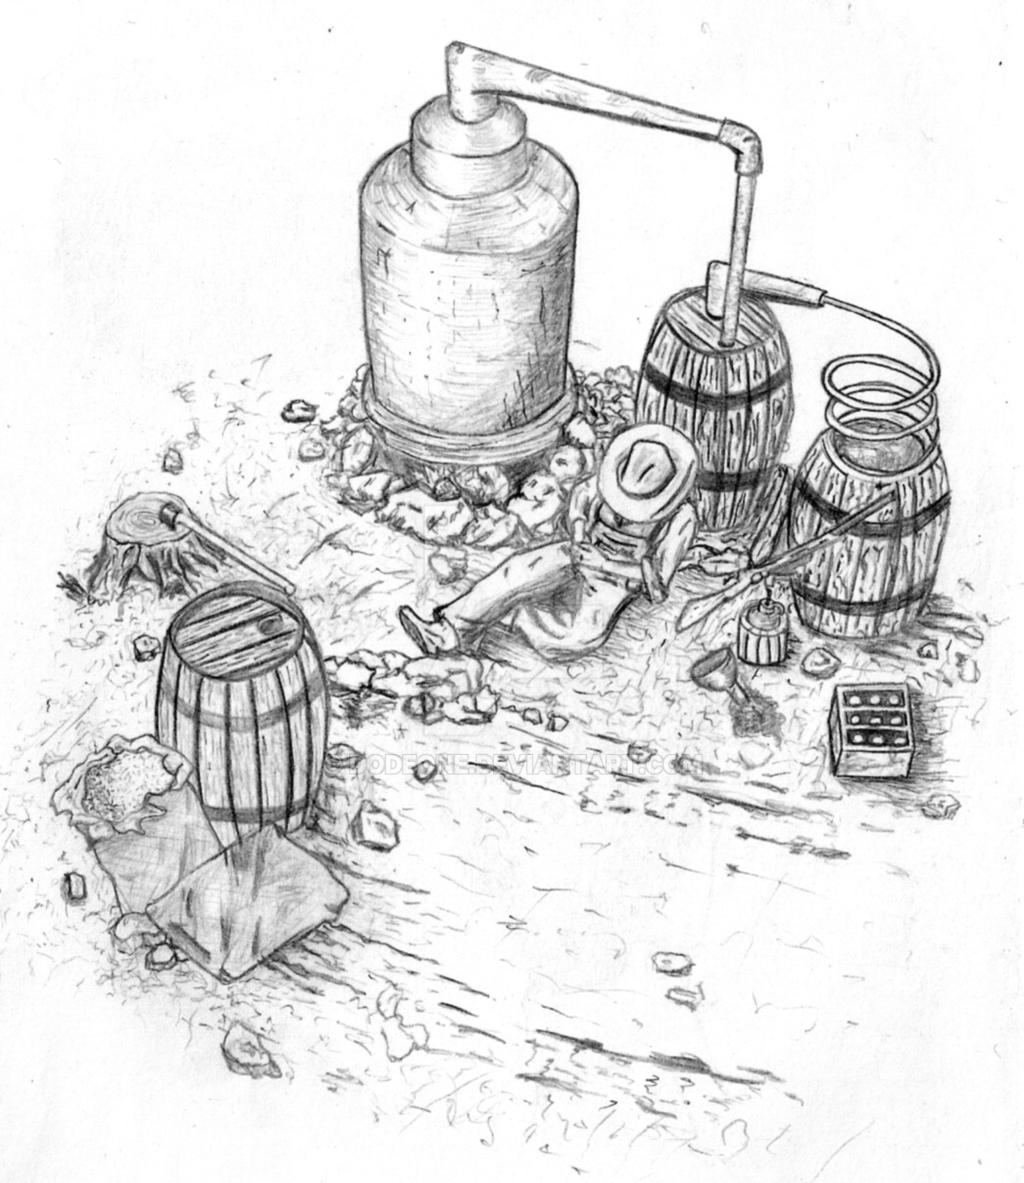 Moonshine still sketch by Dodeone